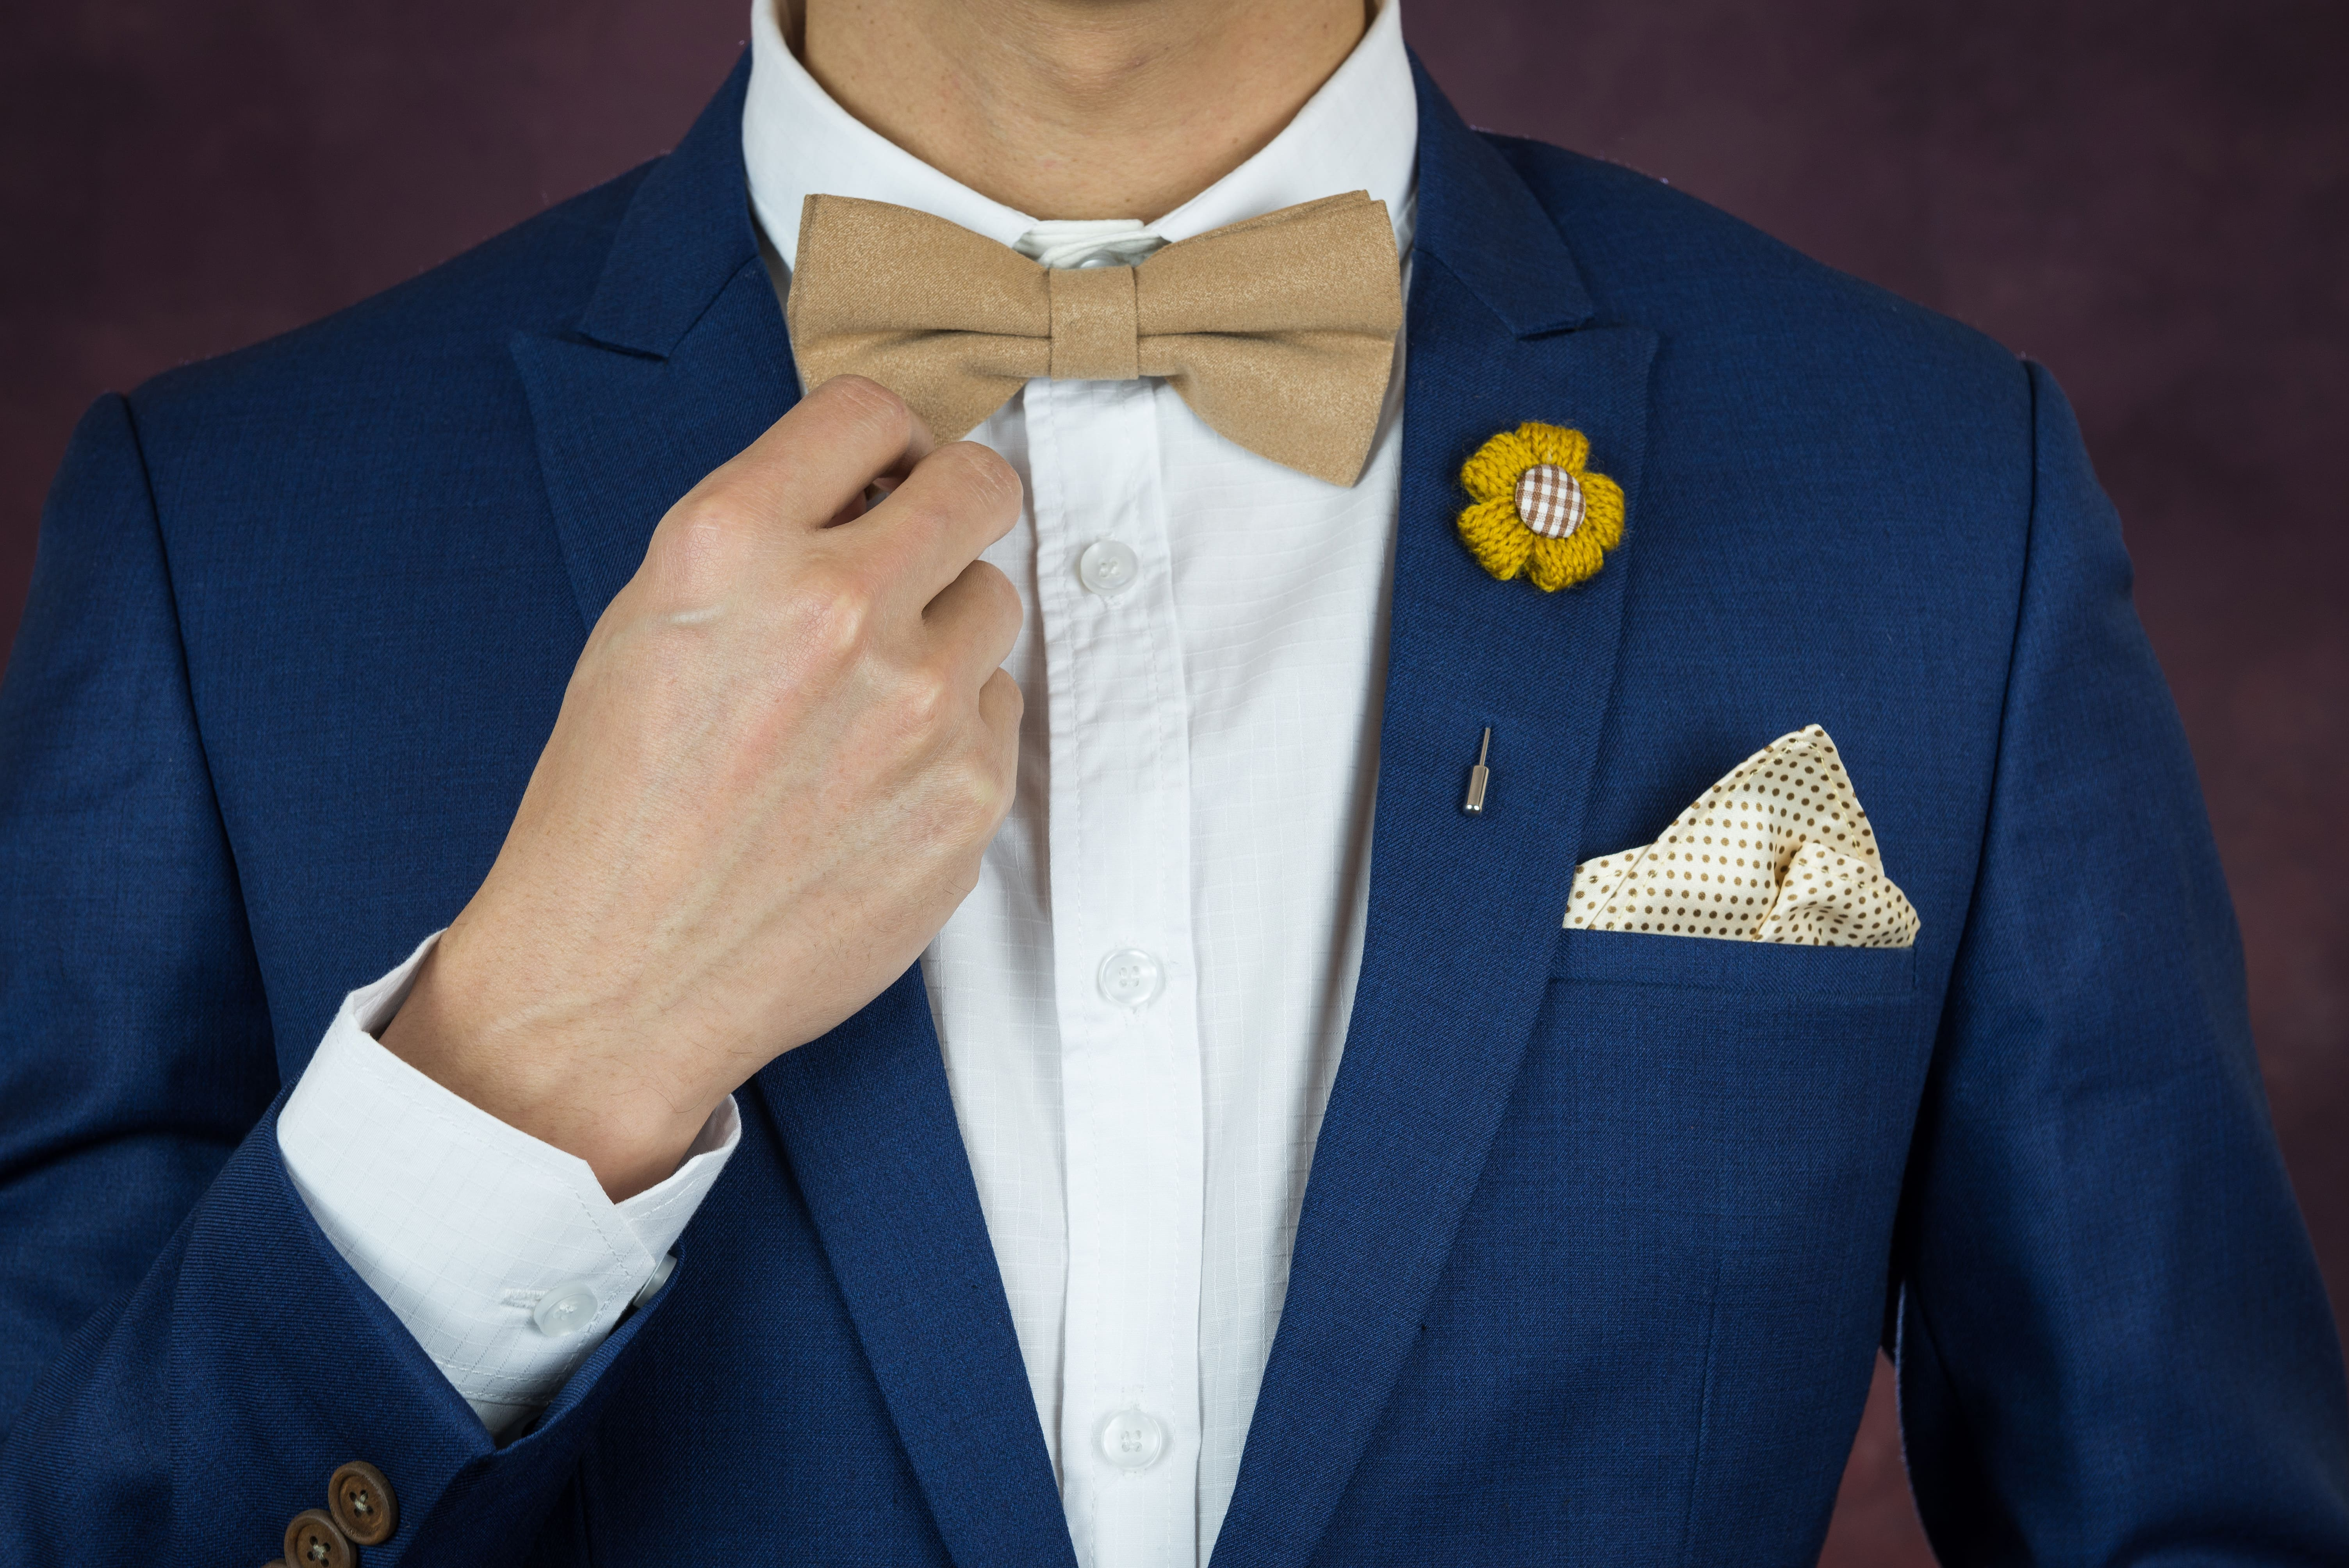 How to wear a lapel pin with a pocket square